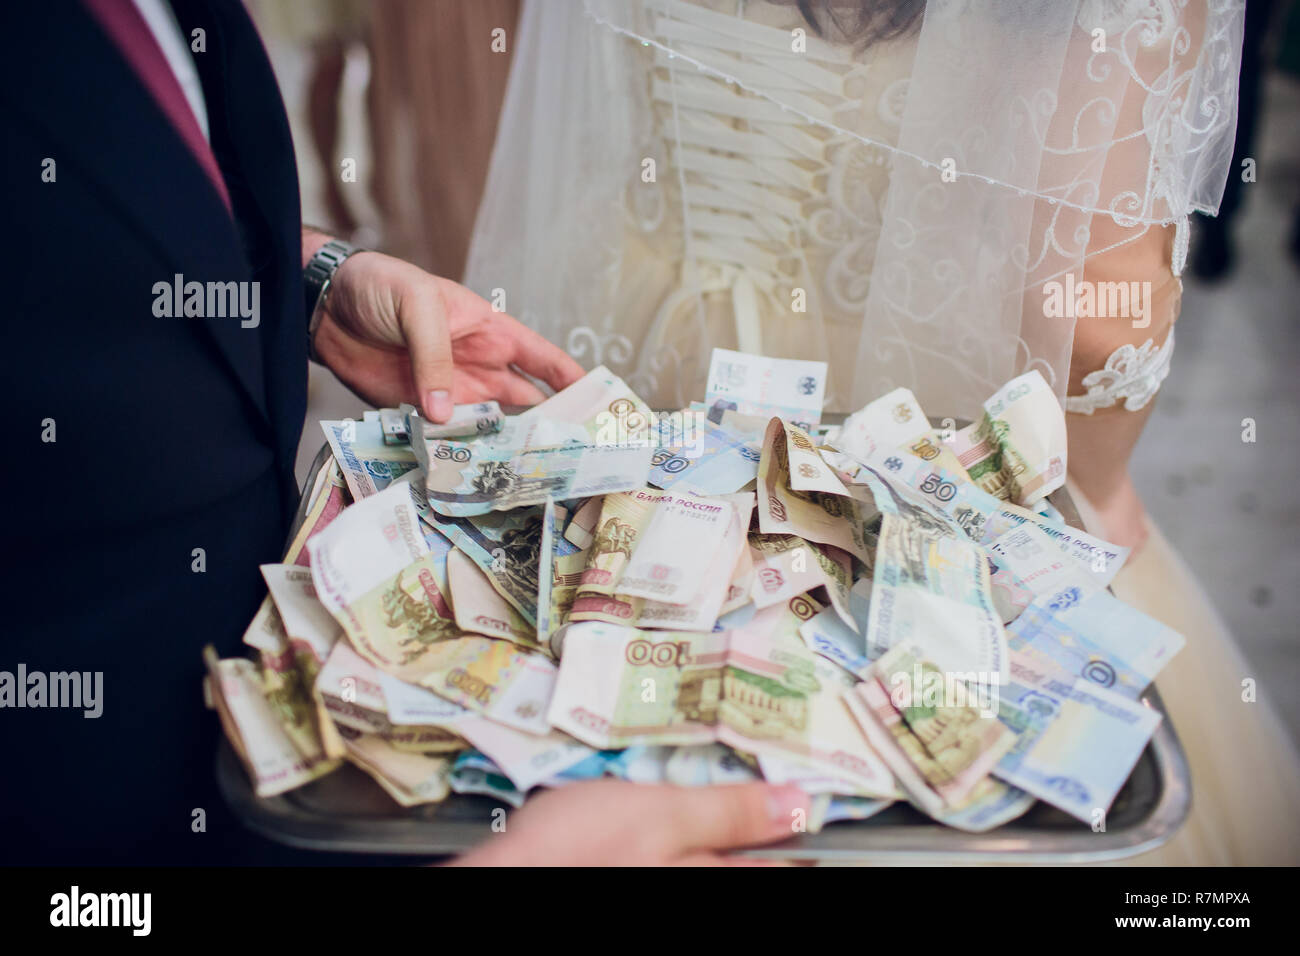 Russian money on the blue plastic tray. - Stock Image